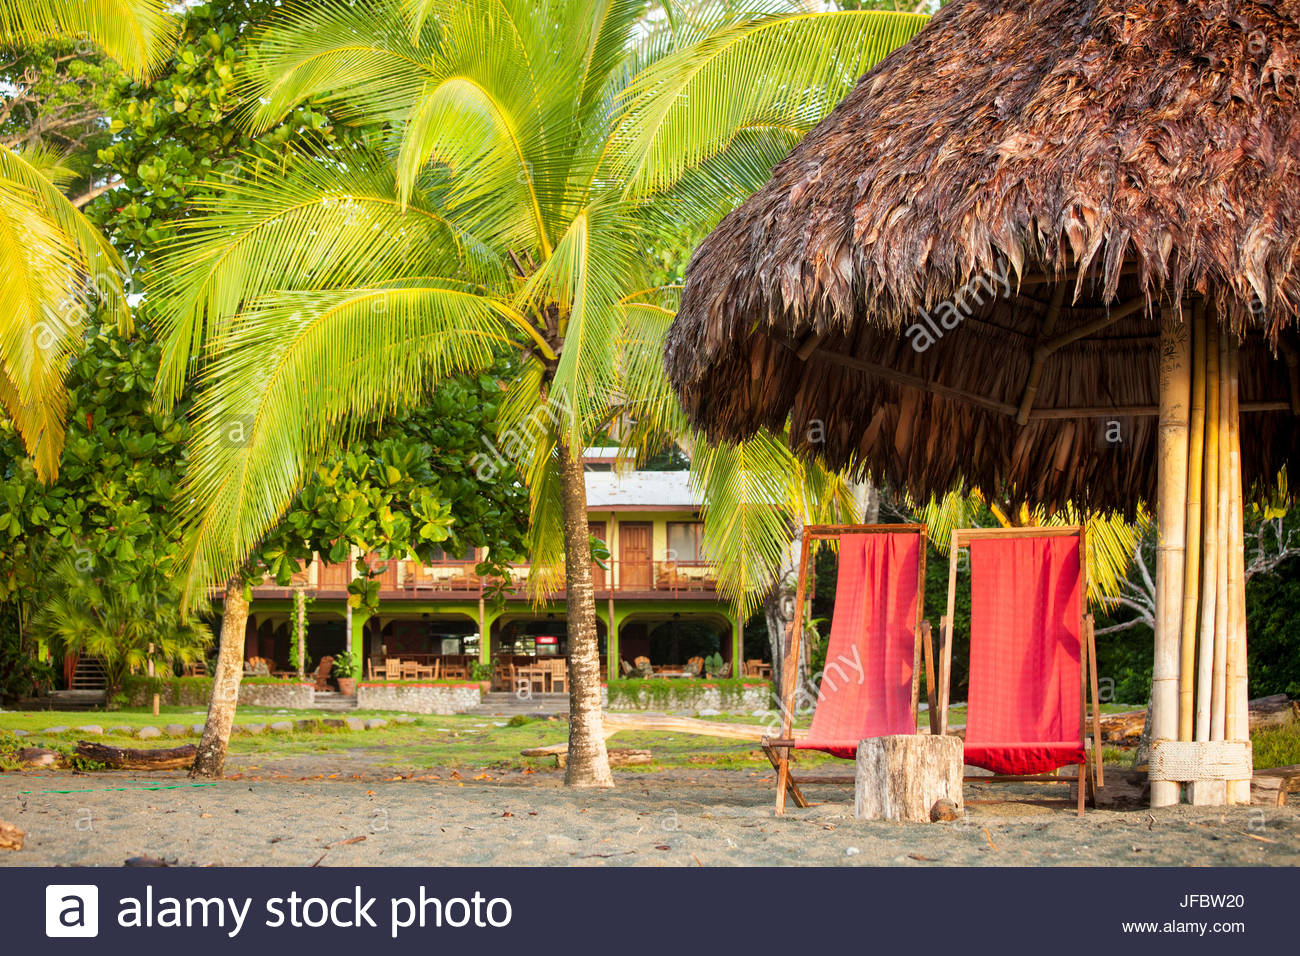 Lounge chairs, palm trees, and a thatch roof in a relaxing tropical scenic. - Stock Image